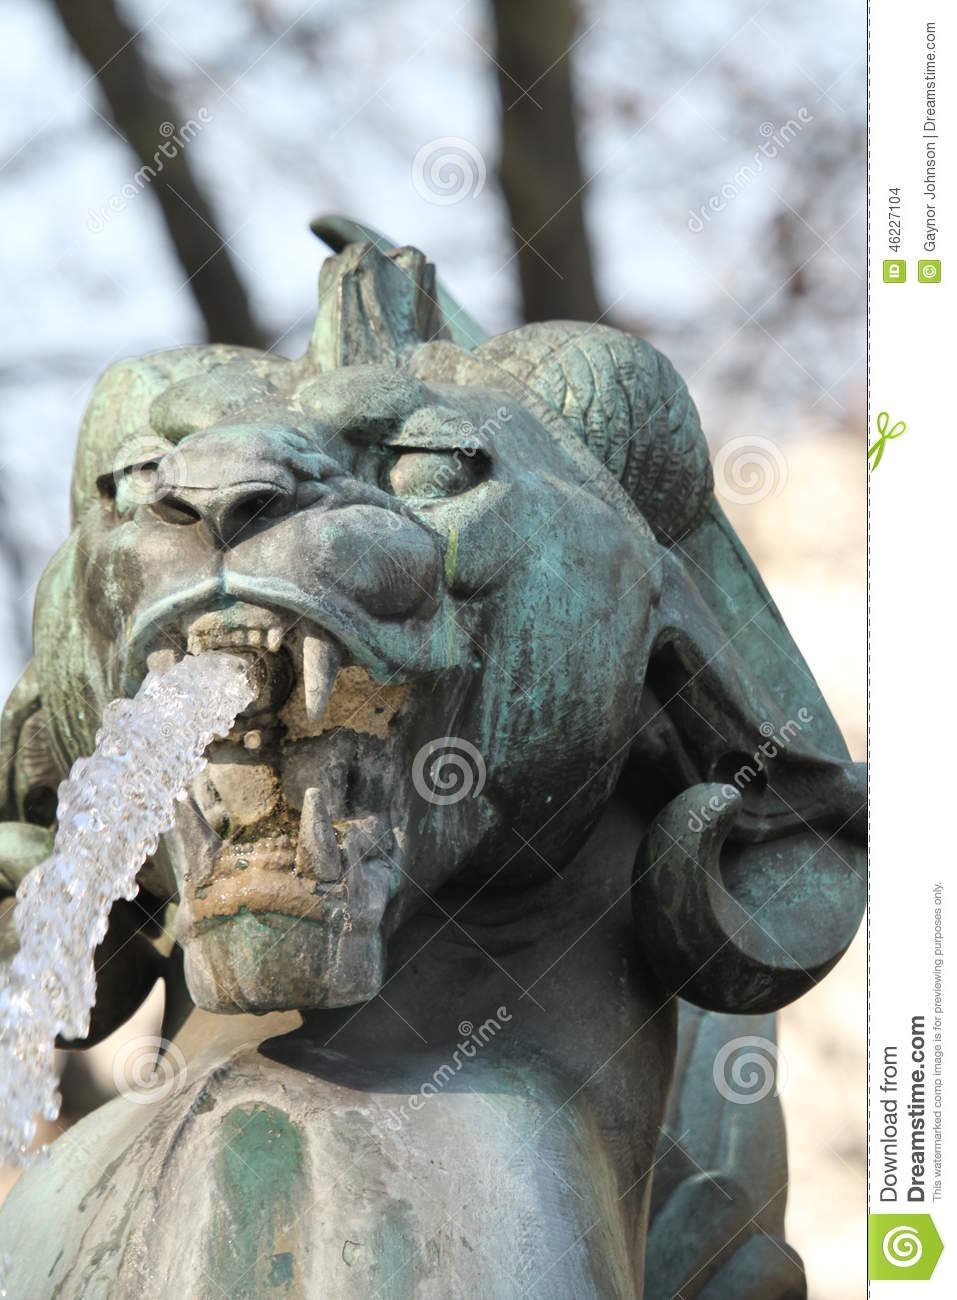 Statue at a water fountain